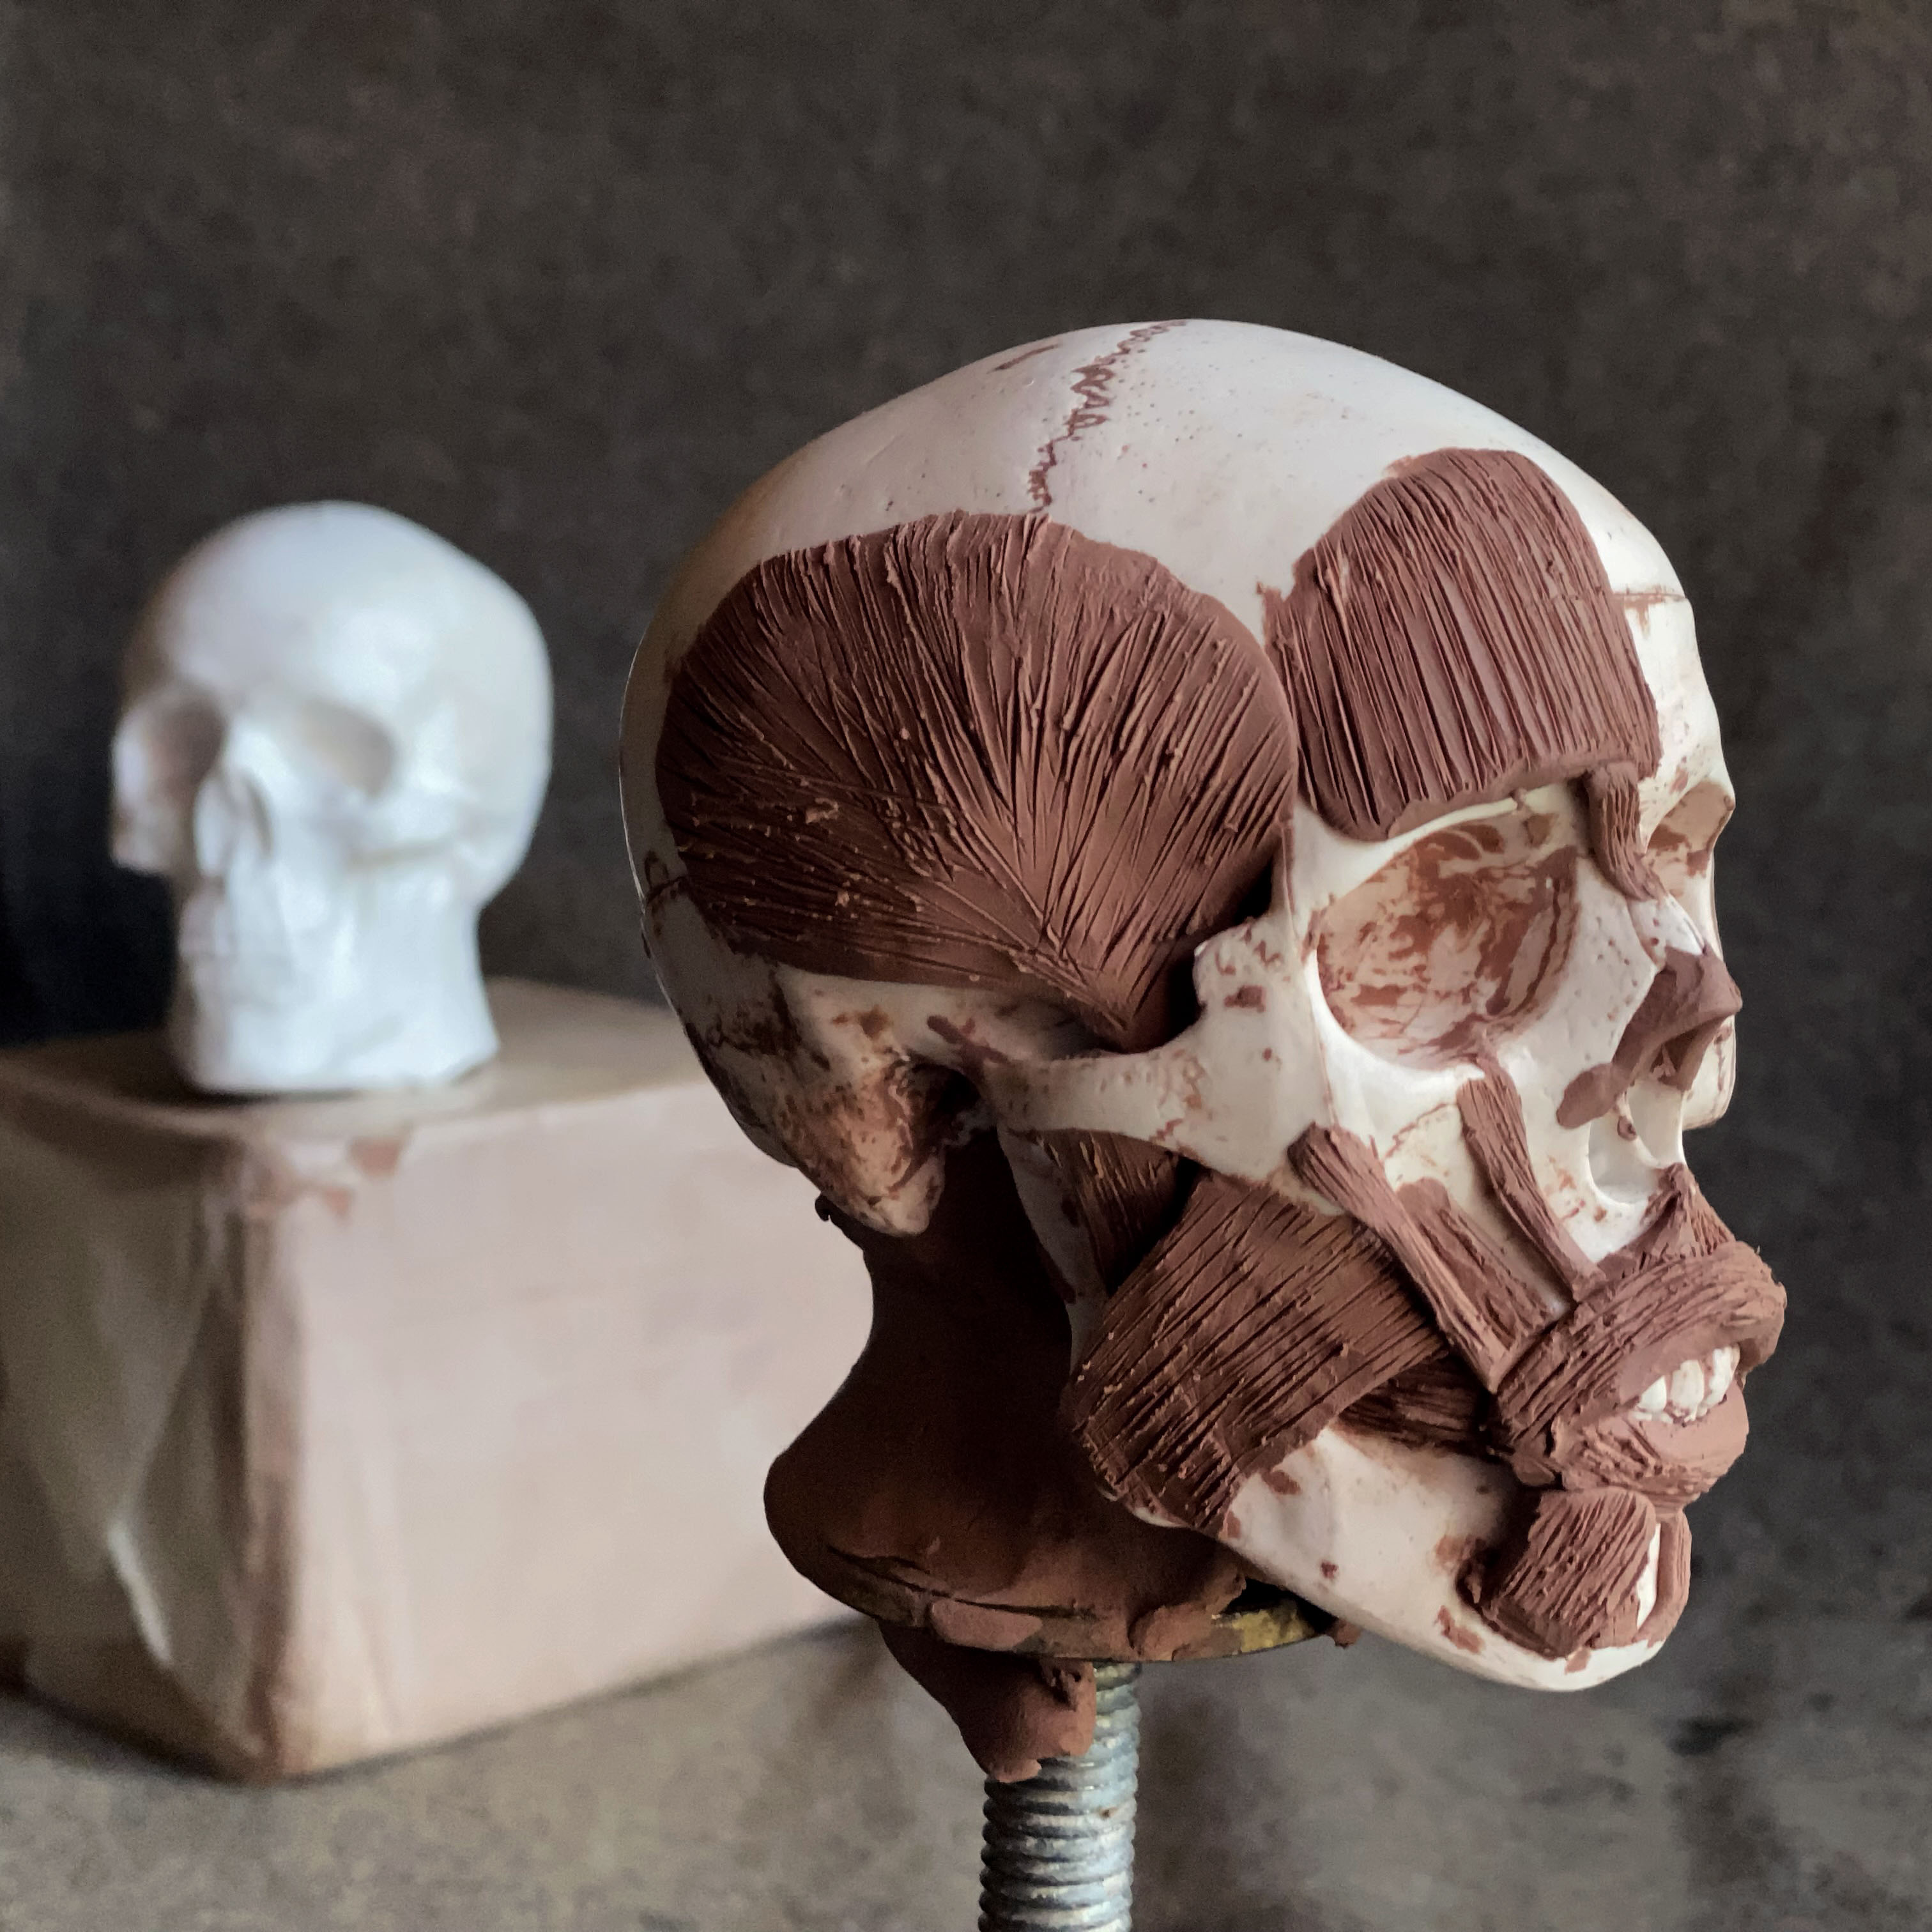 Ecorche model head sculpture